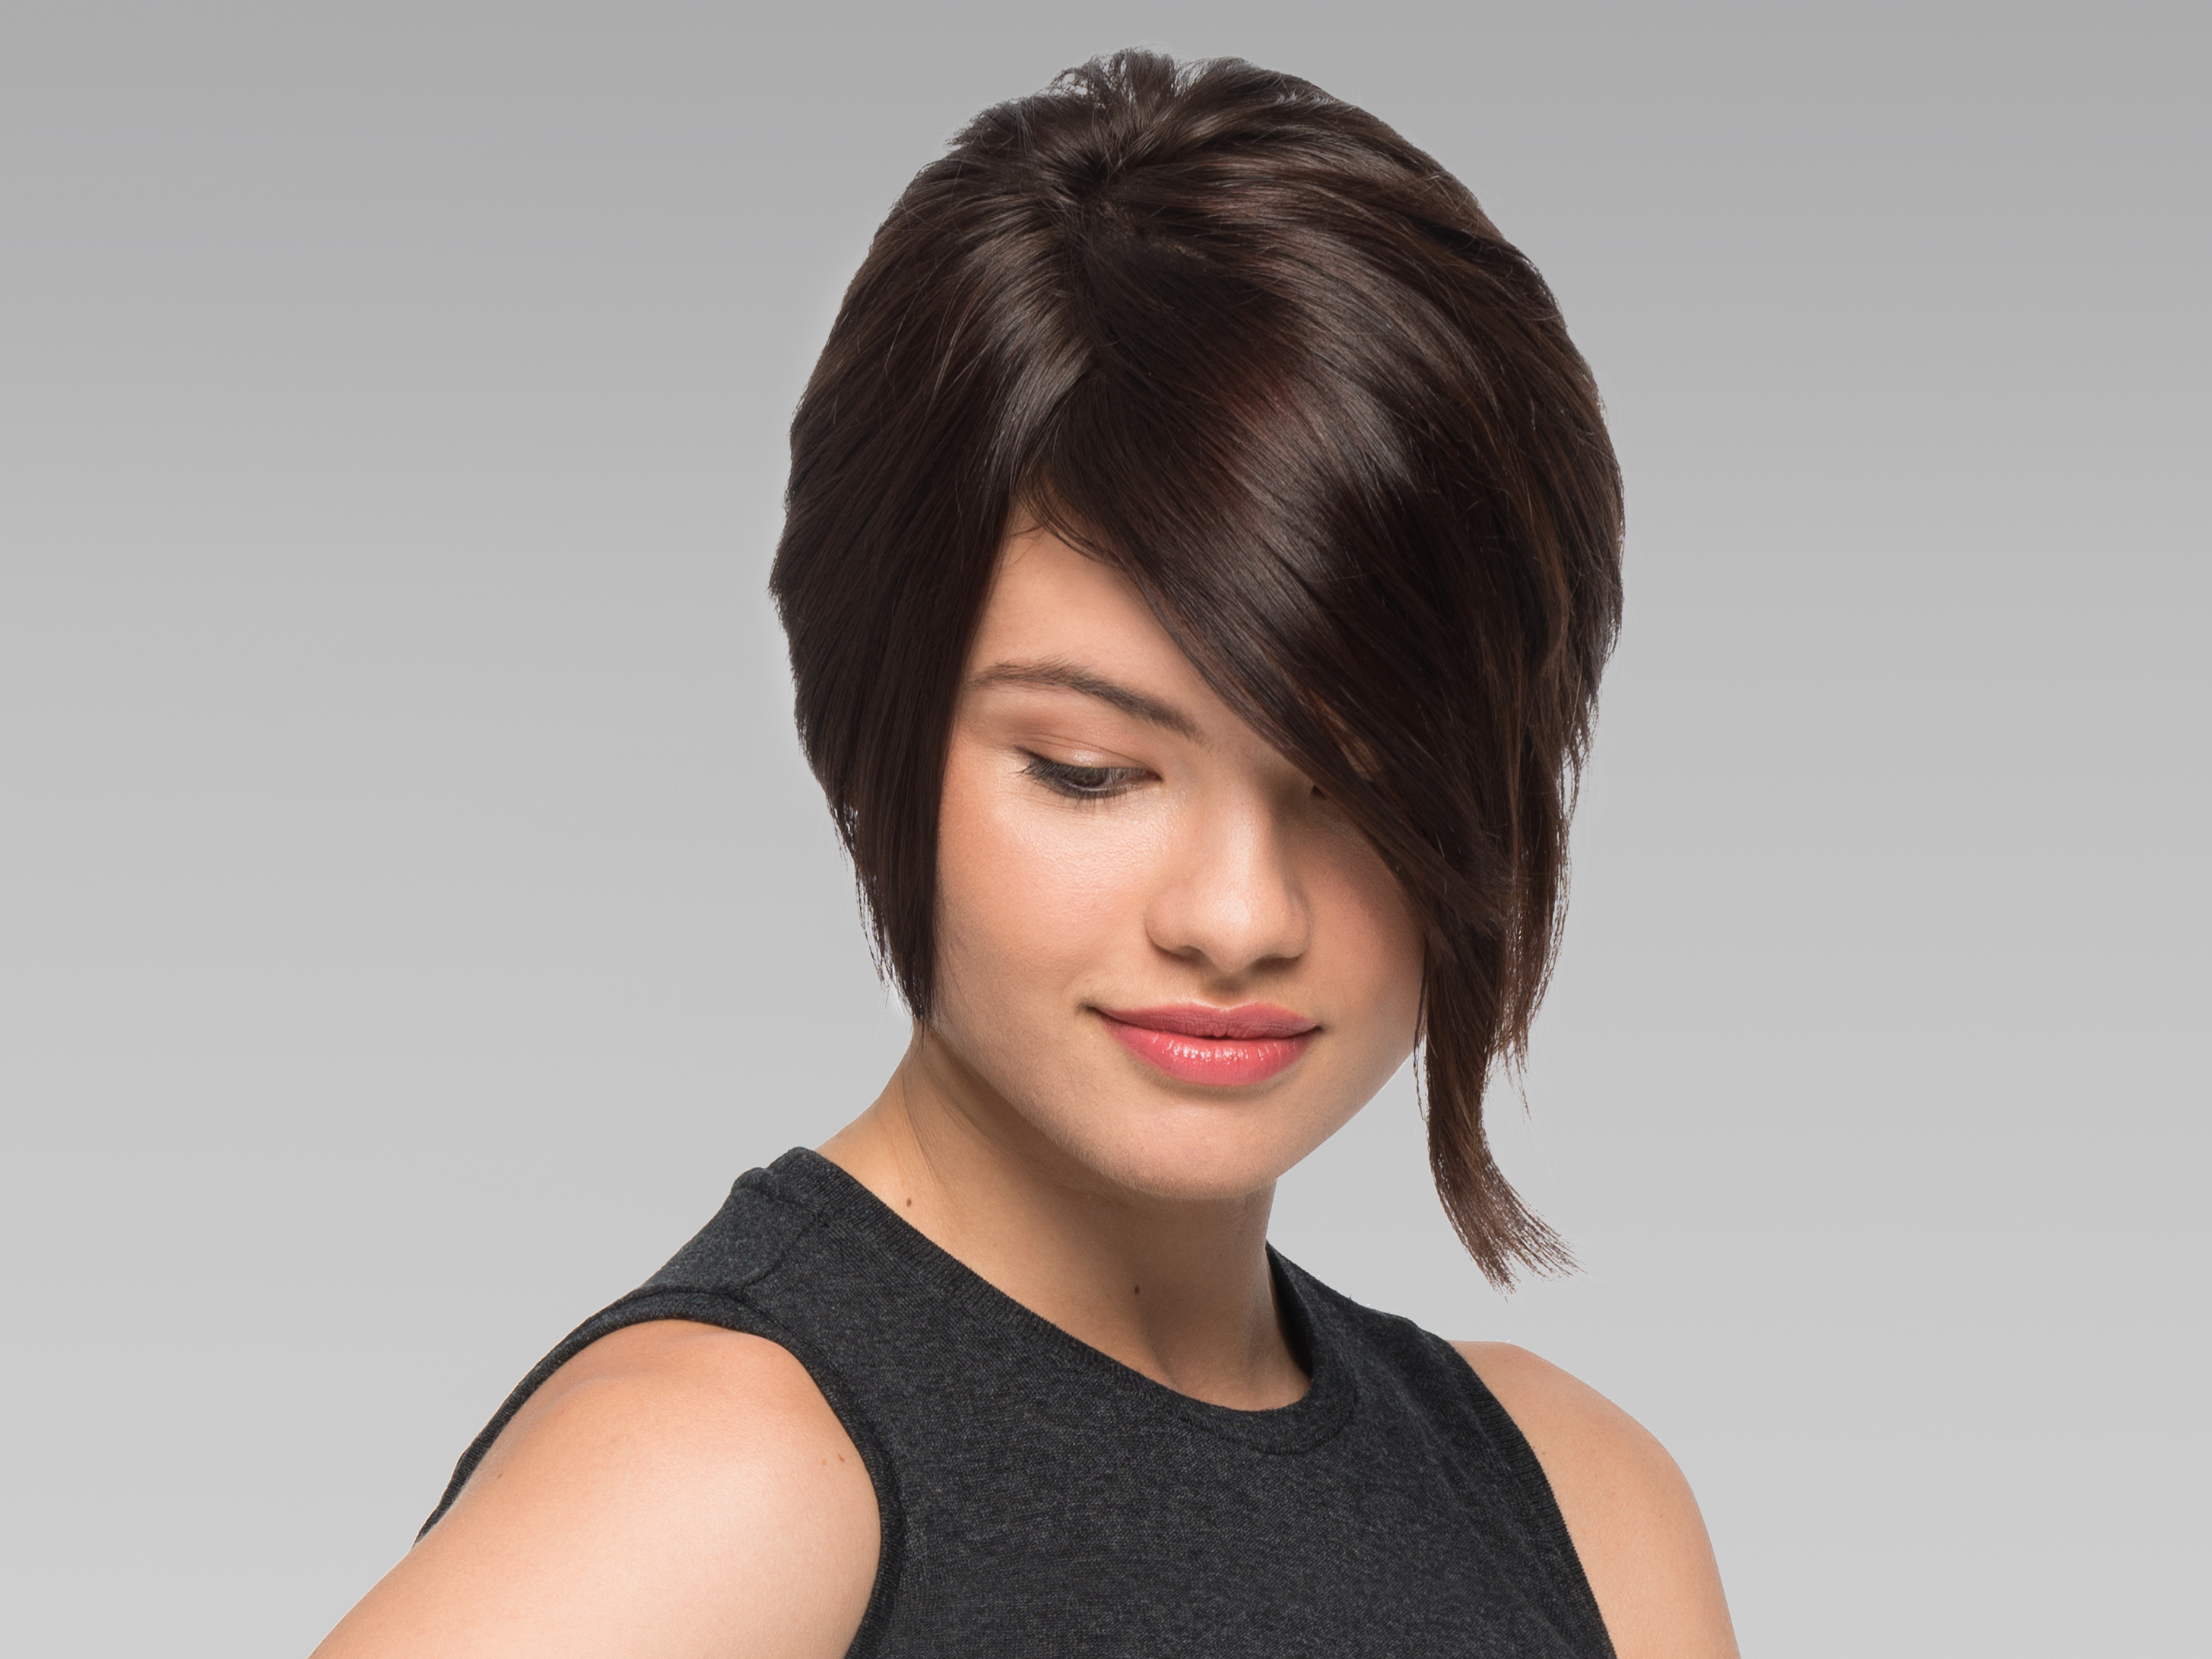 Women's Hairstyles | Supercuts Pertaining To Hairstyles For Long Hair With Short Layers (View 21 of 25)